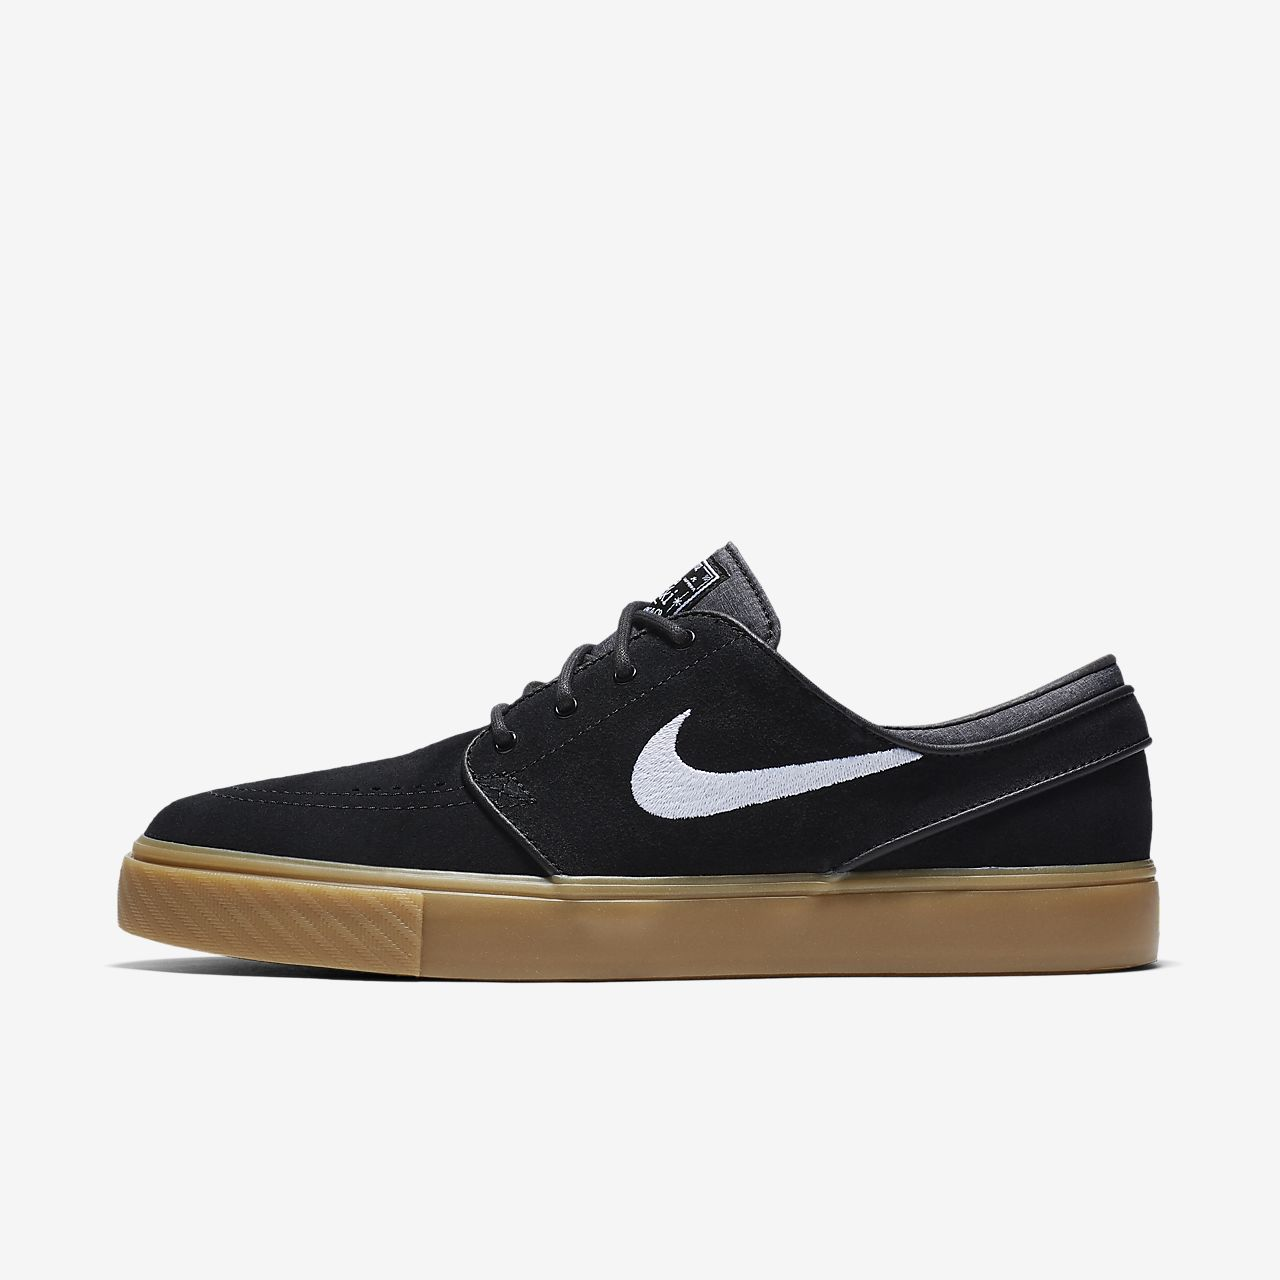 Chaussures Nike SB Collection Stefan Janoski orange Casual homme 7O1xFOLpEw